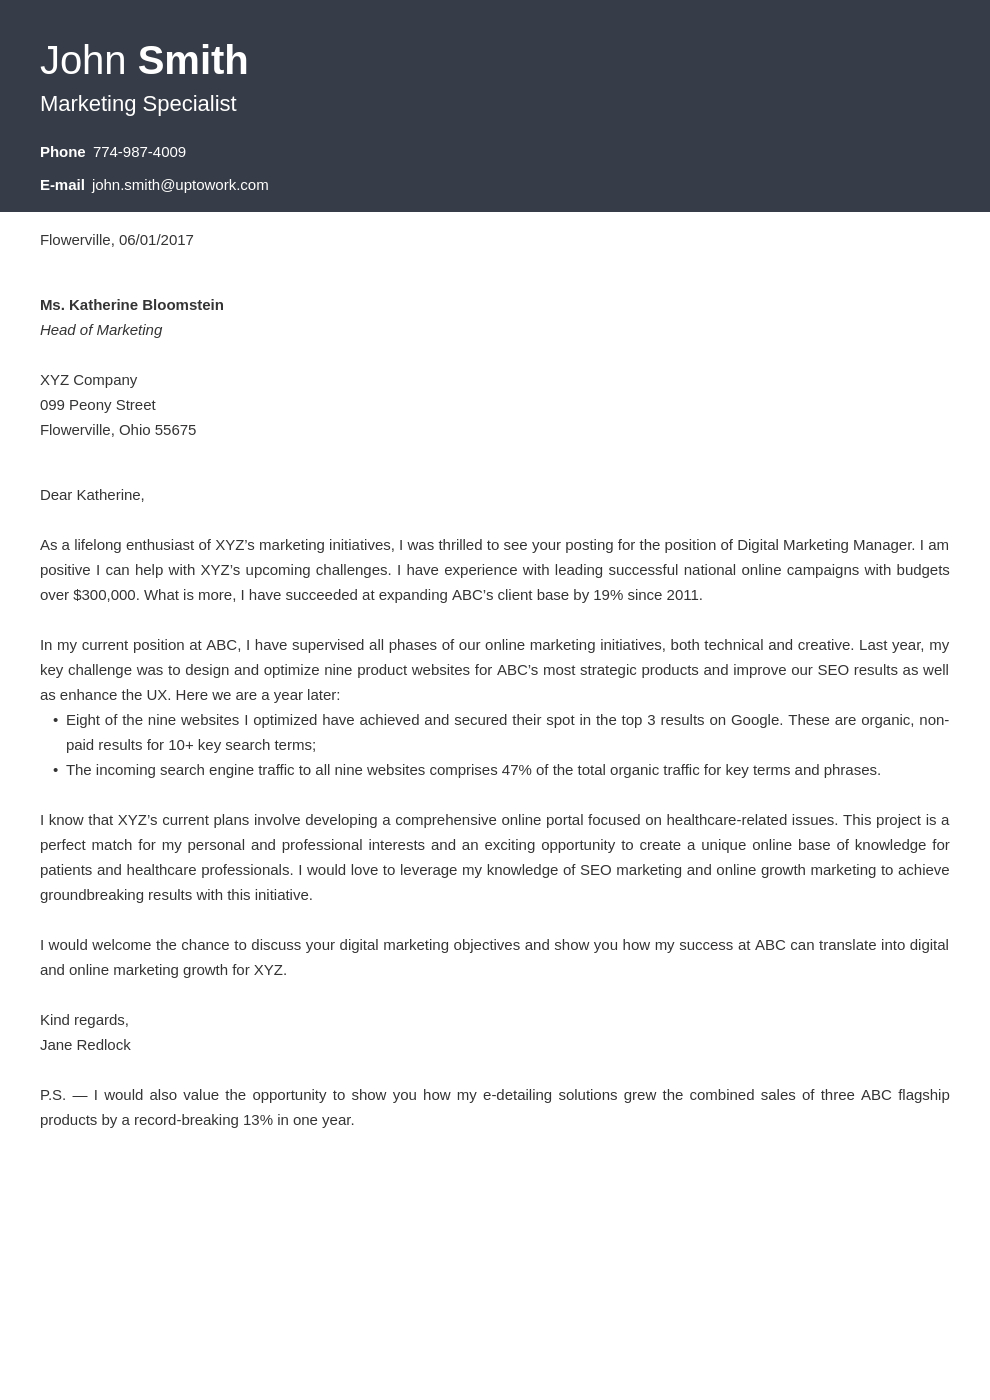 Cover Letters Template  Cover Letter Builder Online Get A Job Winning Cover Letter In Minutes